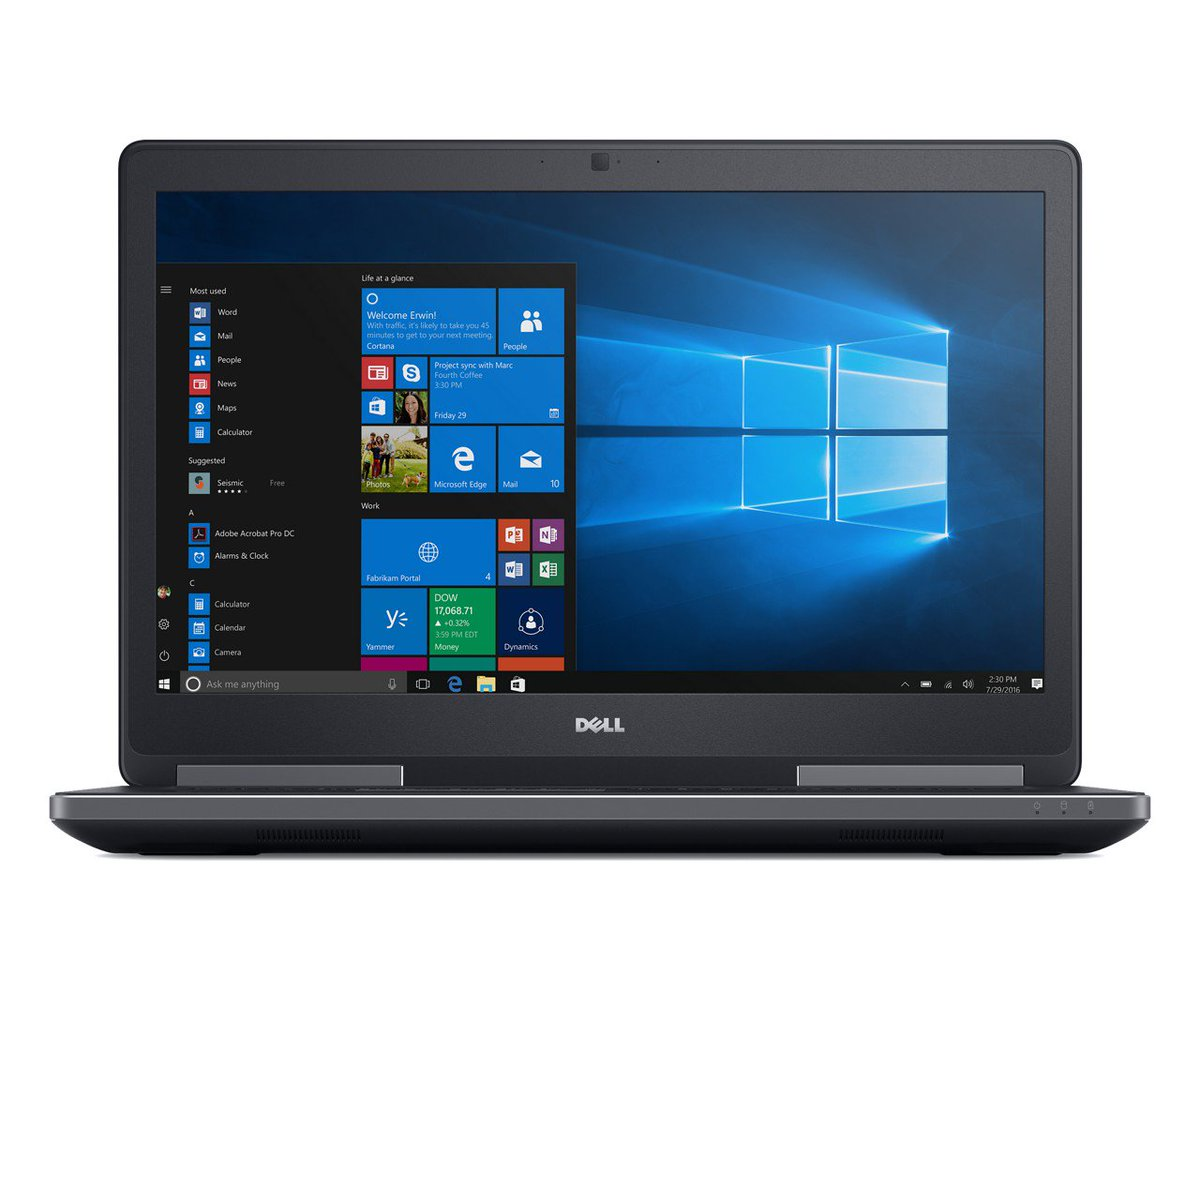 Dell's partnered up with Intel to bring customers high quality, yet affordable computers